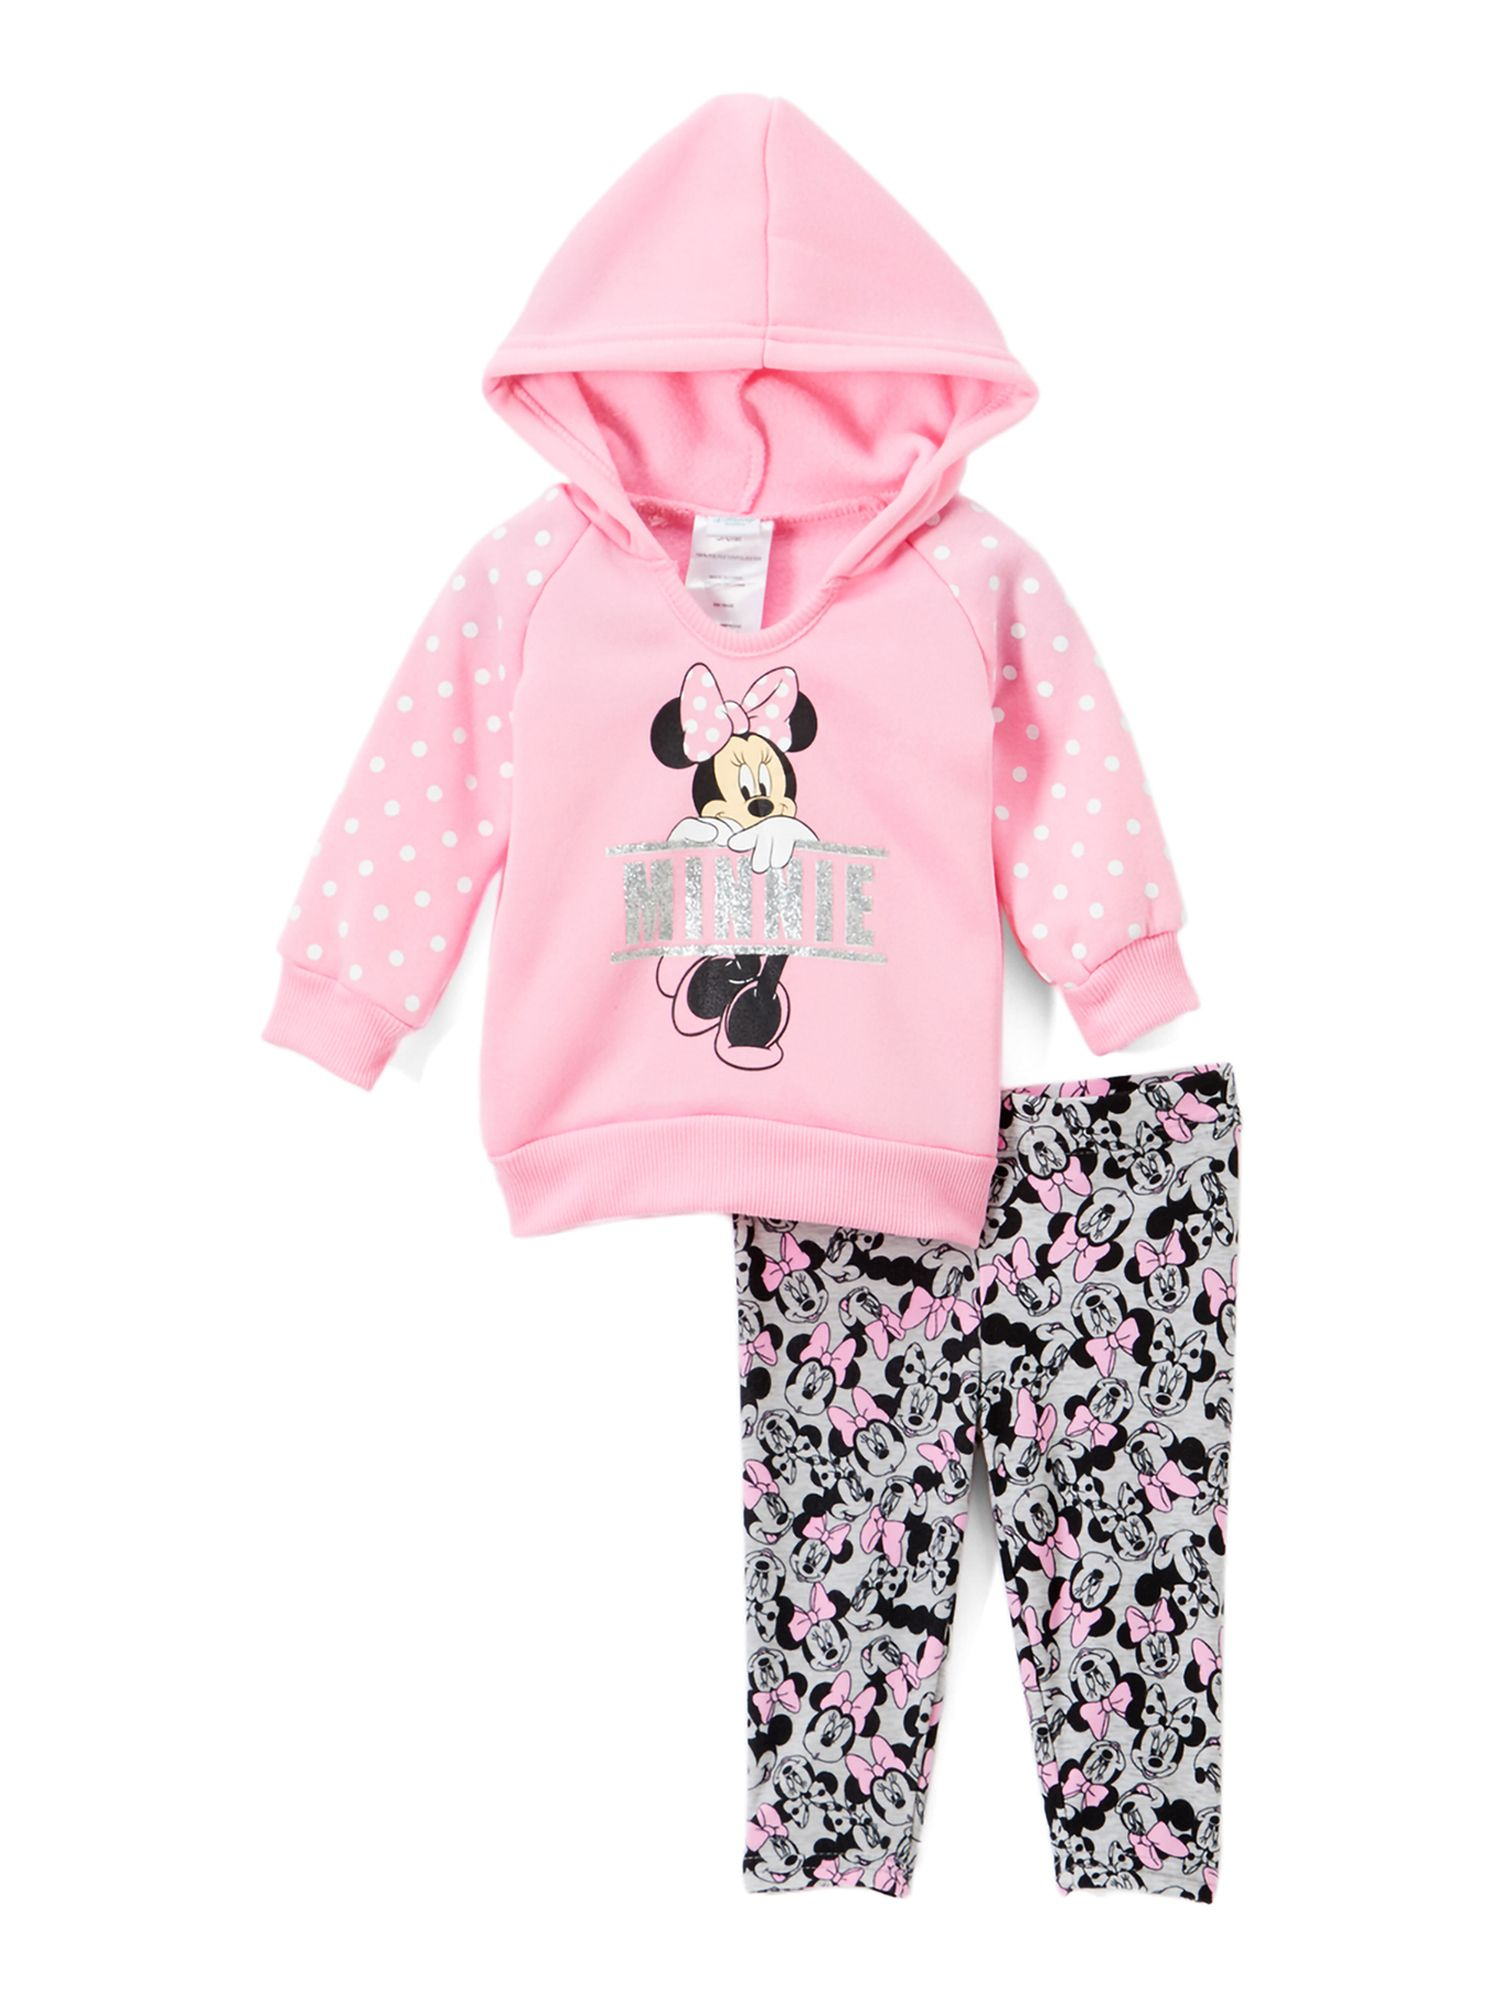 Details about  /Newborn Jumpsuit Set Hoodie Leggings Kids Outfit Toddler Fashion Baby Clothes